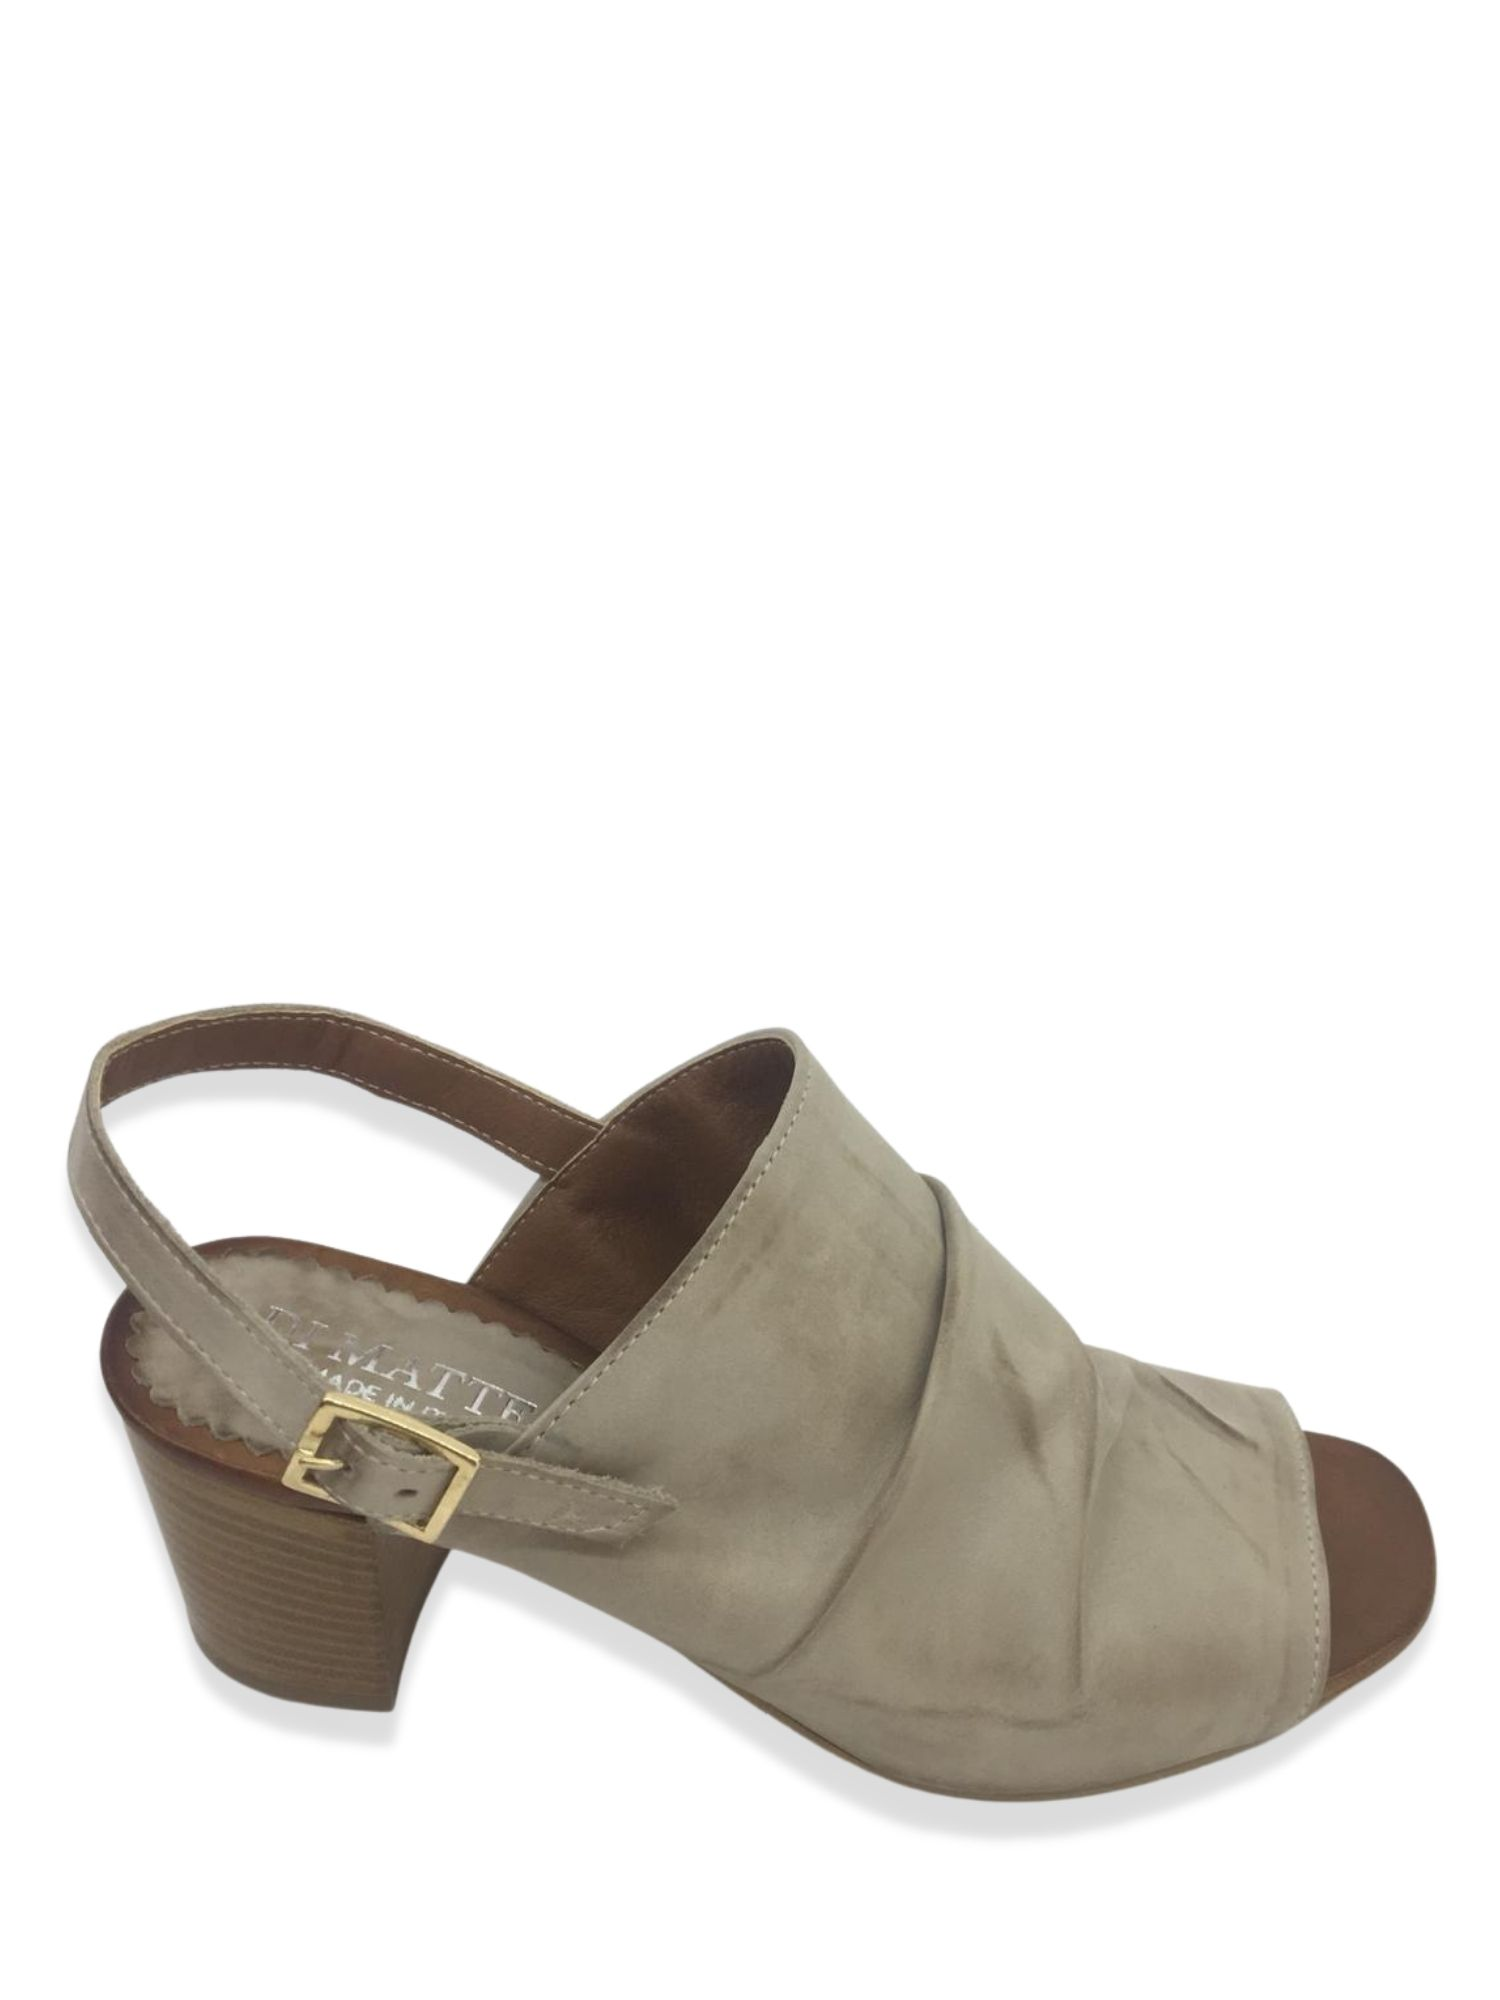 Sandalo Sabot Made in Italy 106 Taupe